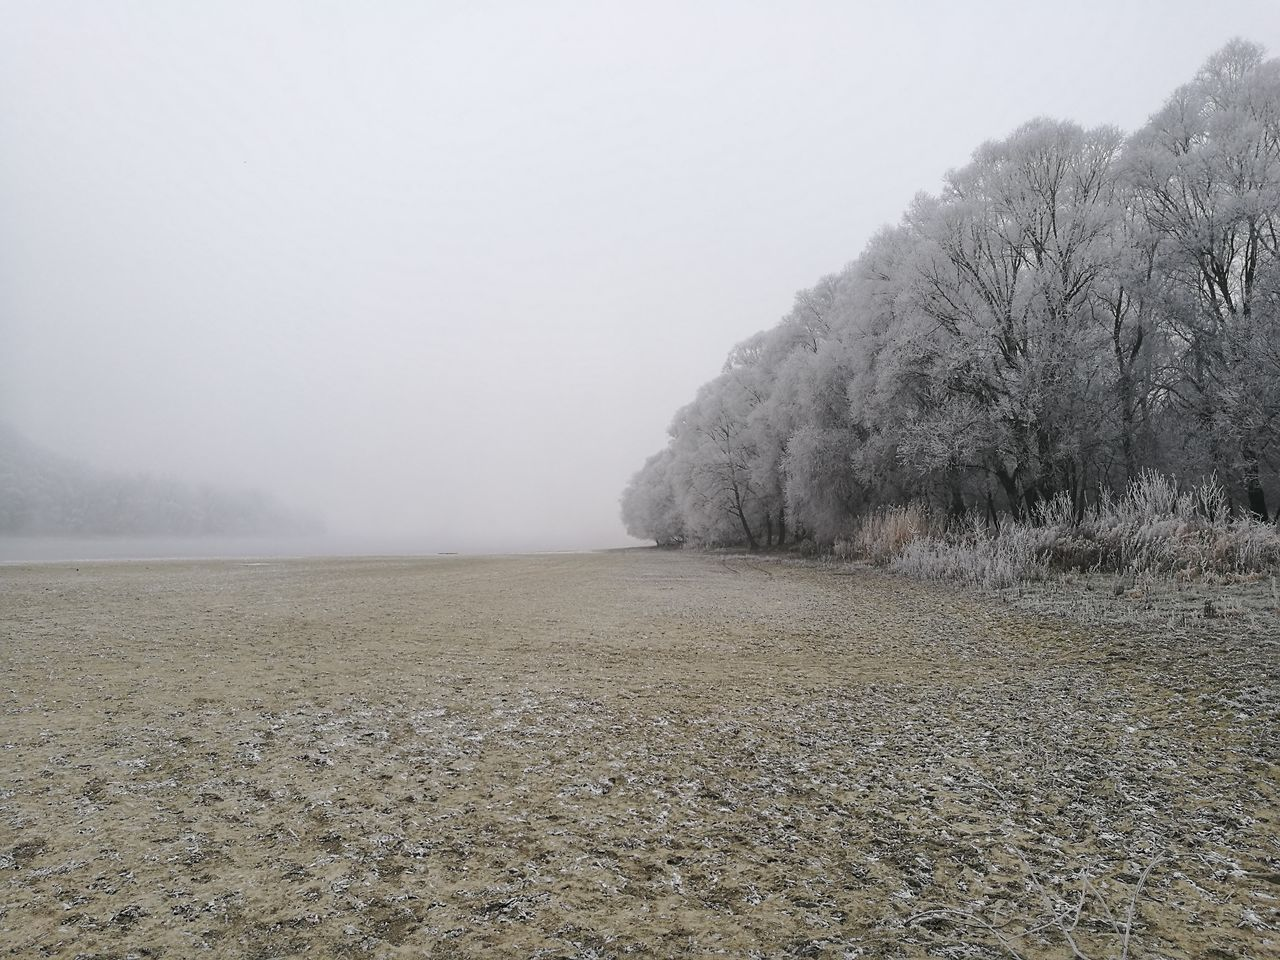 Fog Nature Beach Outdoors Freezing Winter Trees Freezing ❄ Winter Wonderland Freezing Cold Freezingweather Wintertime Winter Foggyweather Foggyday No People Nature Tree Beauty In Nature Landscape